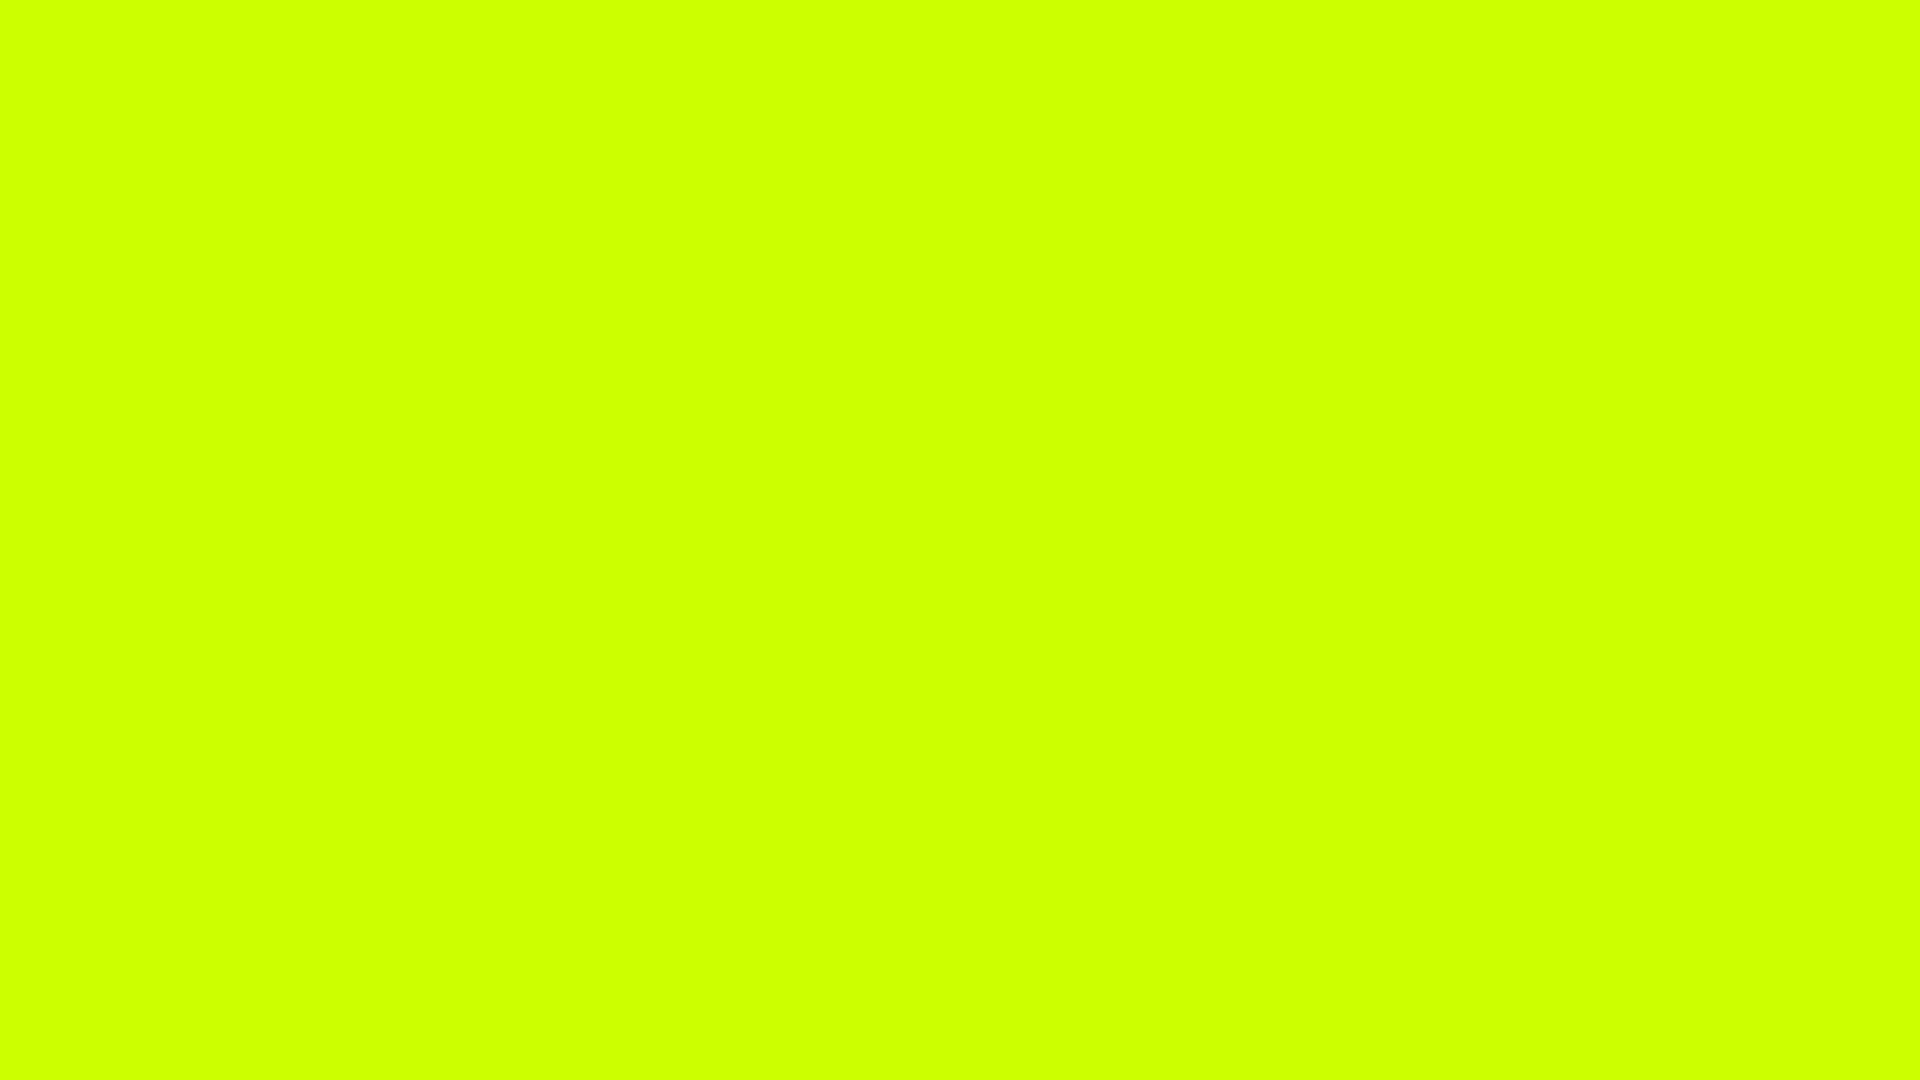 1920x1080 Electric Lime Solid Color Background